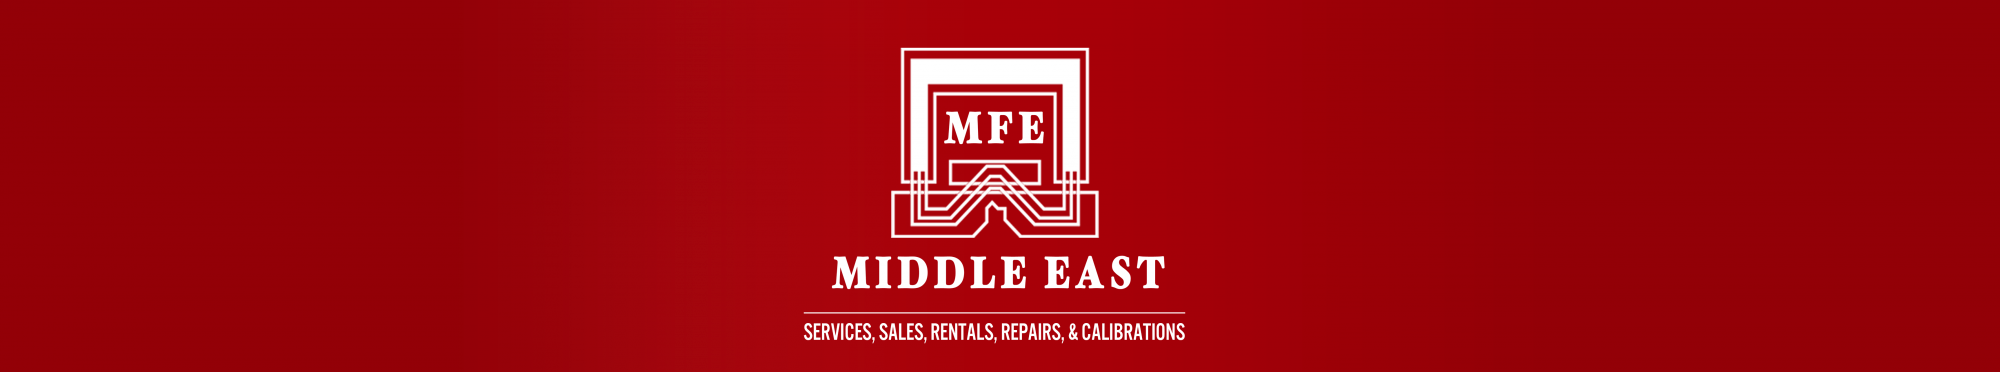 MFE Middle East: Services, Sales, Rentals, Repairs, & Calibrations